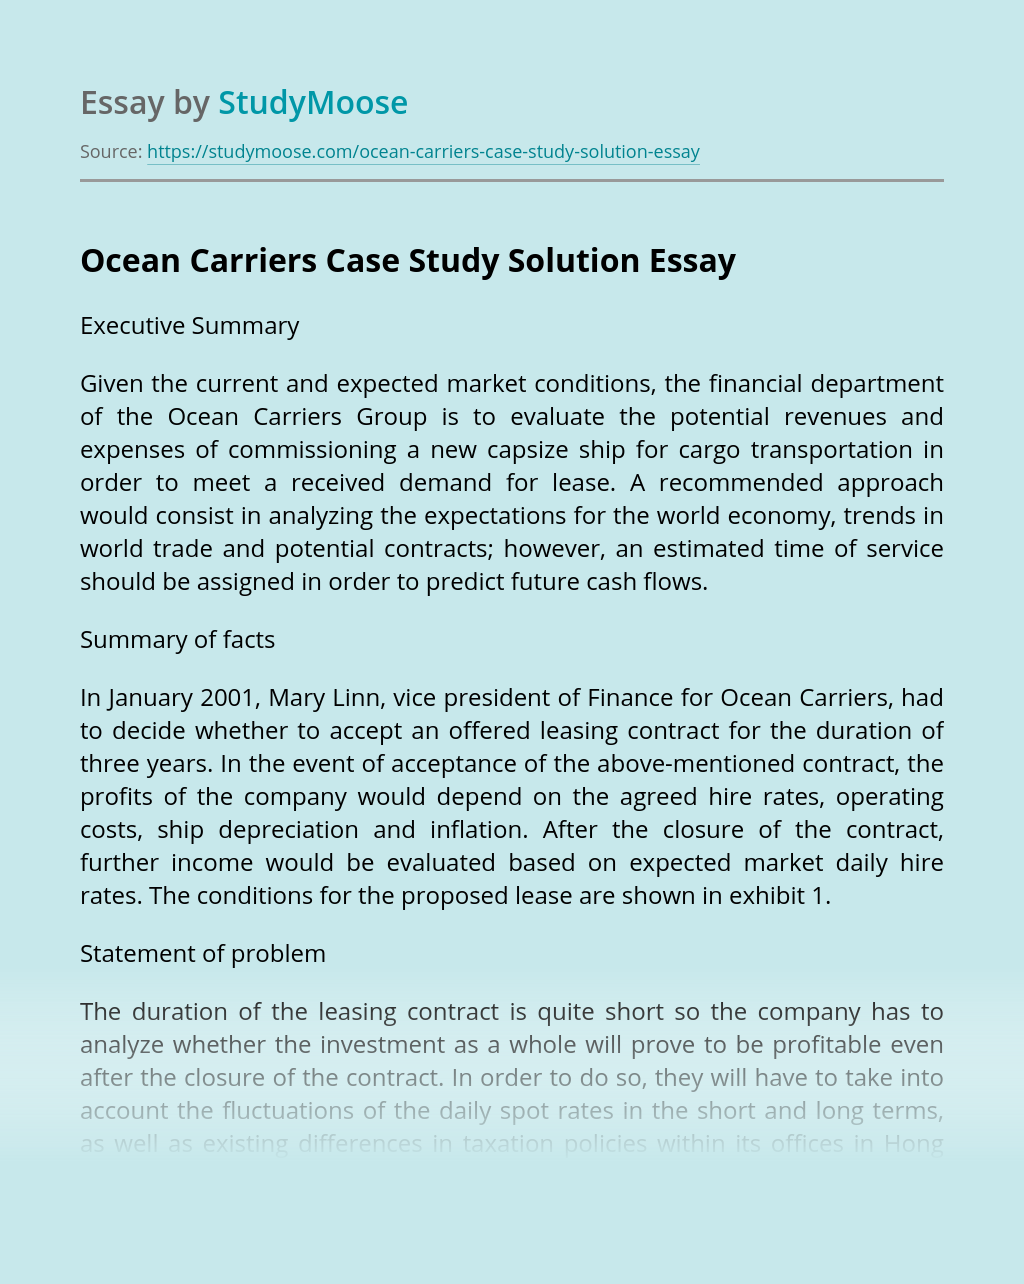 Ocean Carriers Case Study Solution